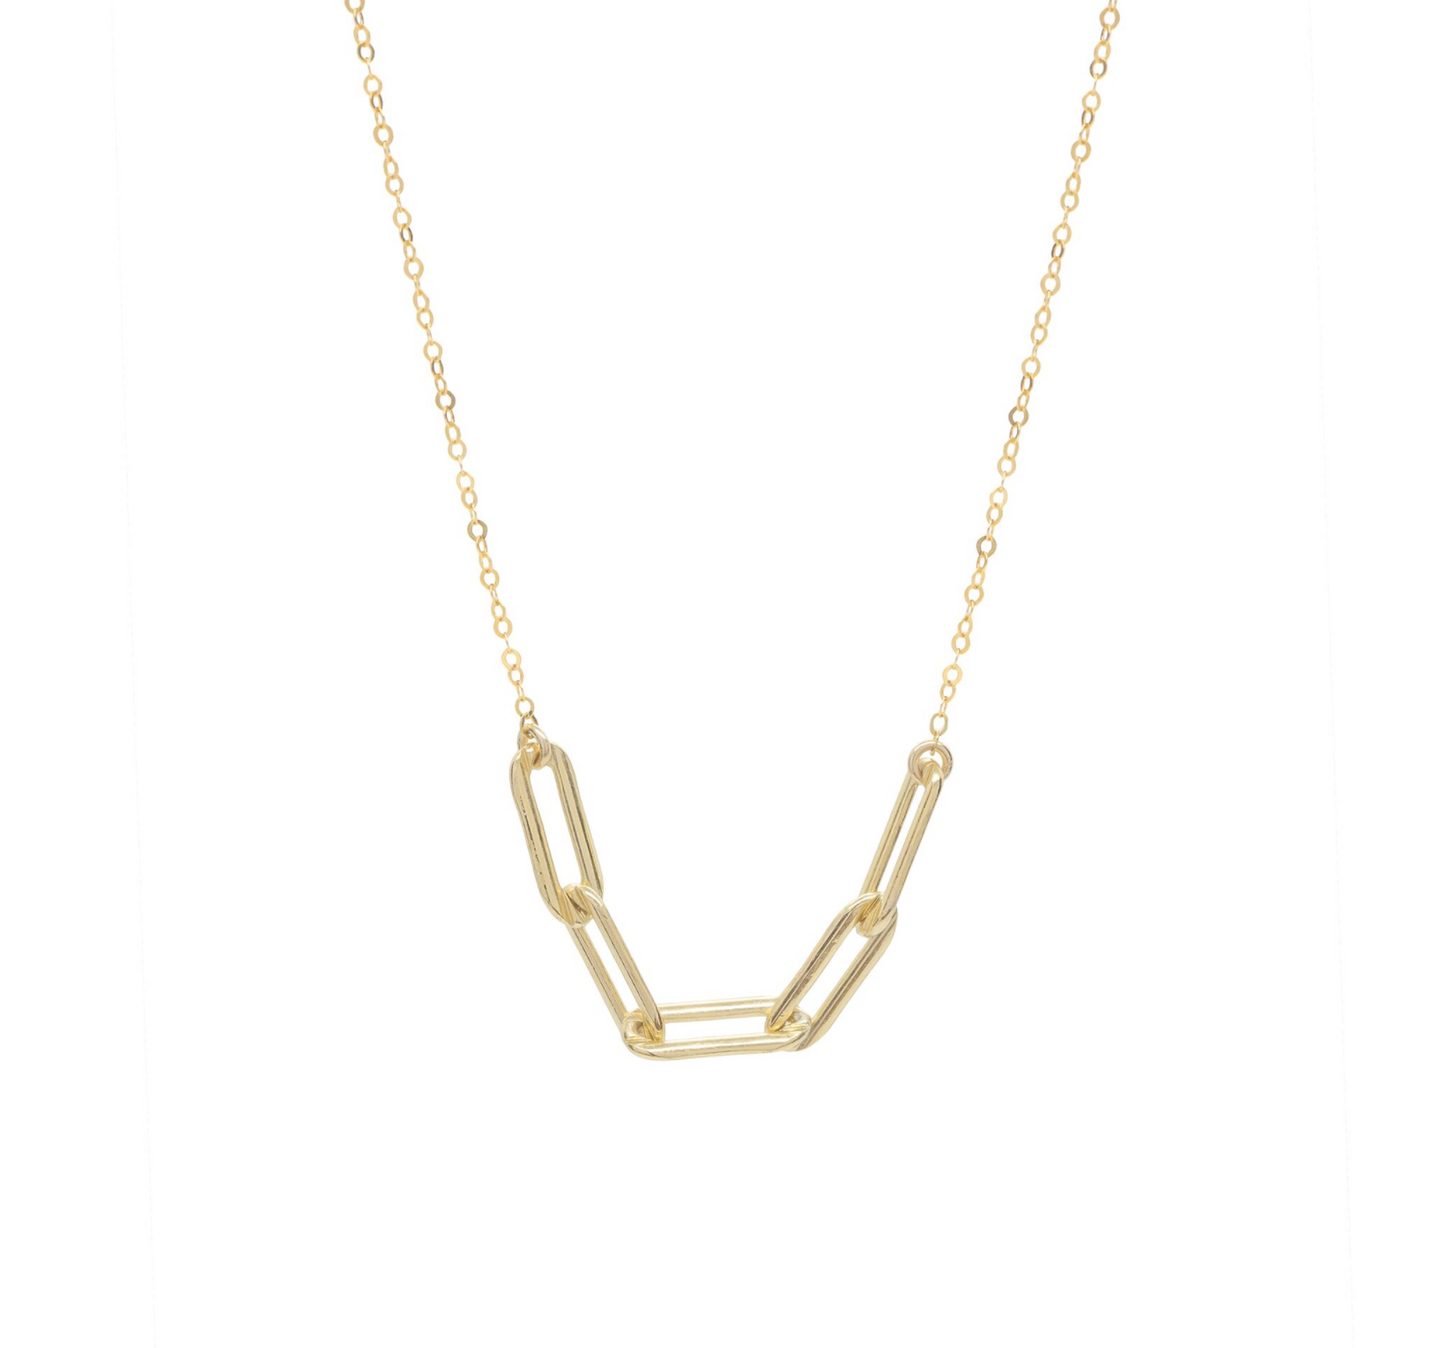 City Slicker Chunky Gold Chain Necklace